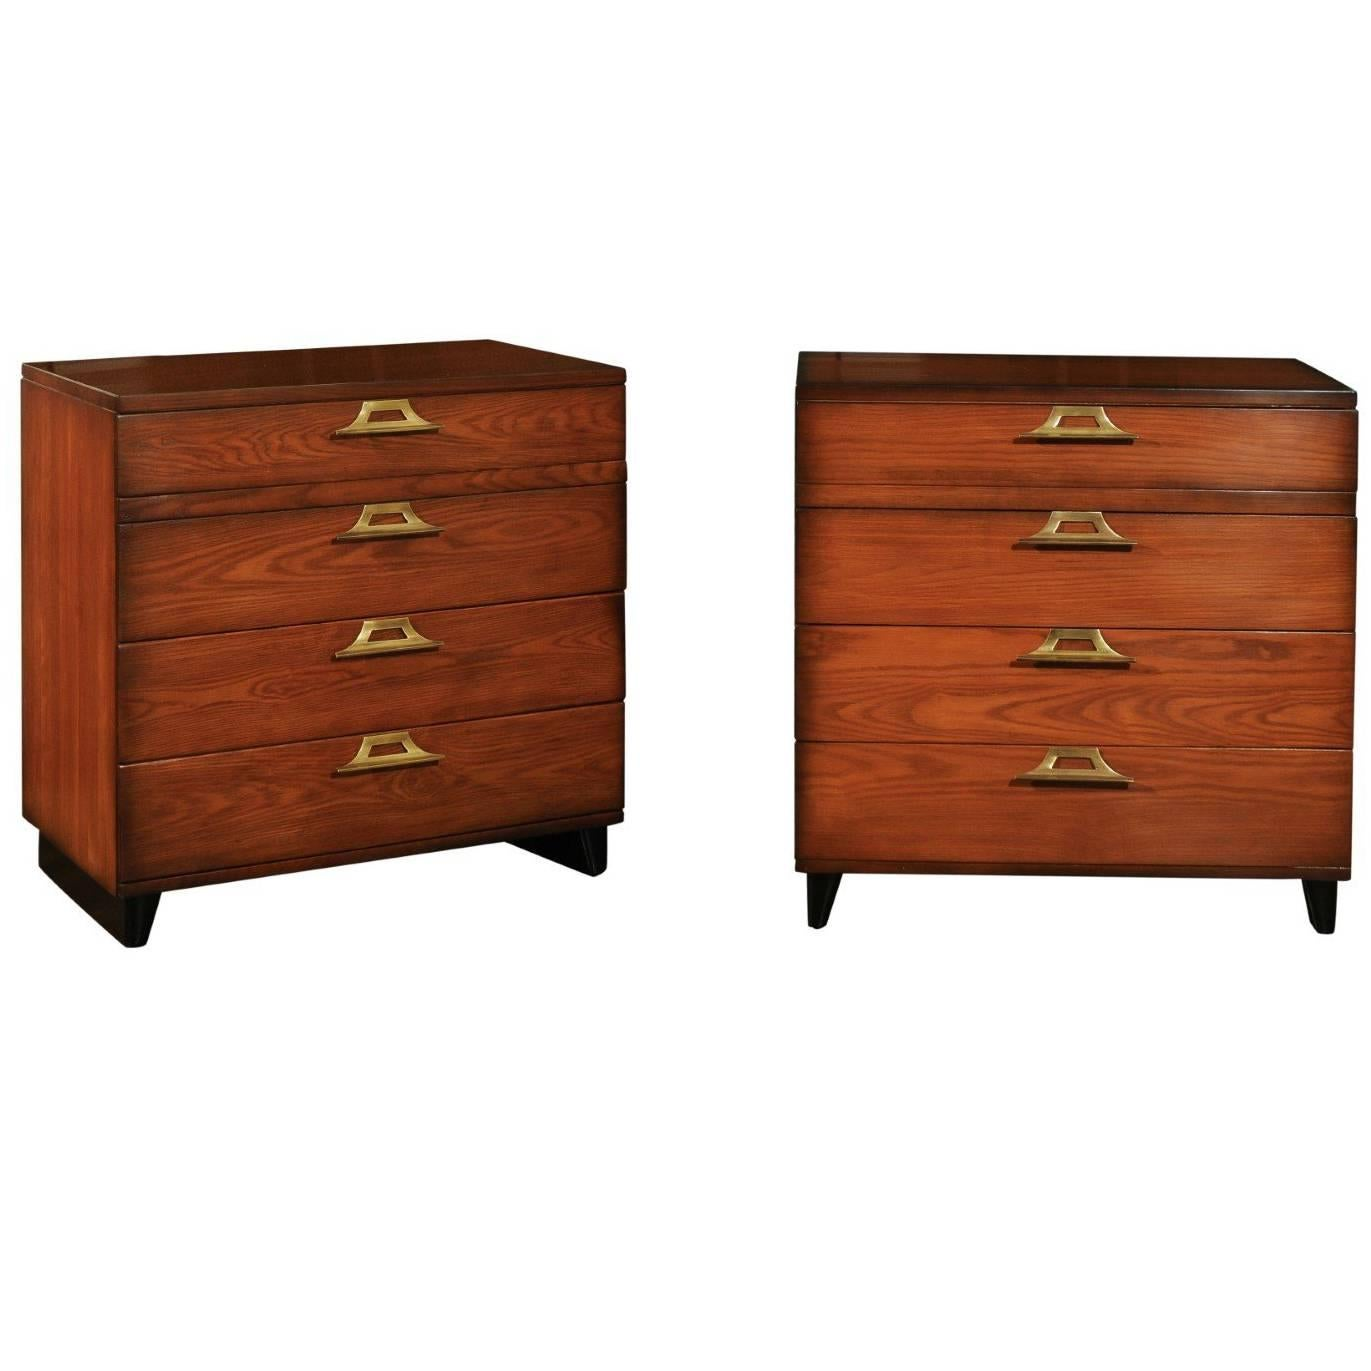 Rare Restored Pair of Pagoda Commodes by John Wisner for Ficks Reed, circa 1954